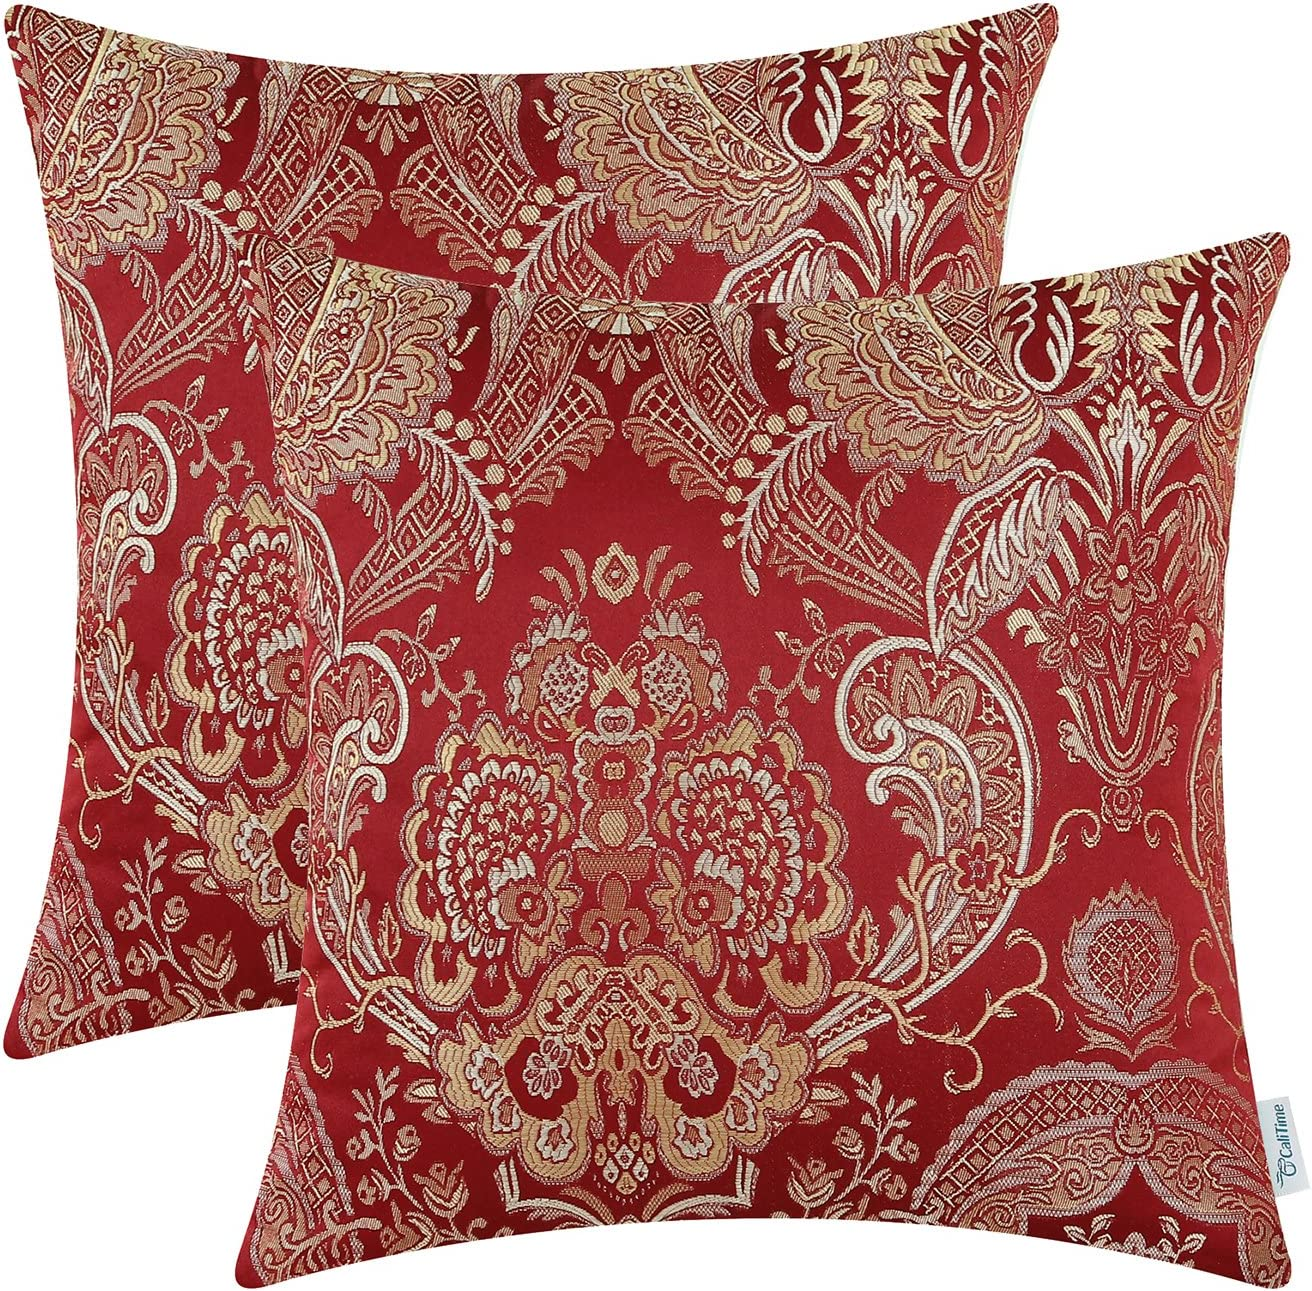 CaliTime Pack of 2 Supersoft Throw Pillow Covers Cases for Couch Sofa Home Decor Vintage Damask Floral 18 X 18 Inches Burgundy